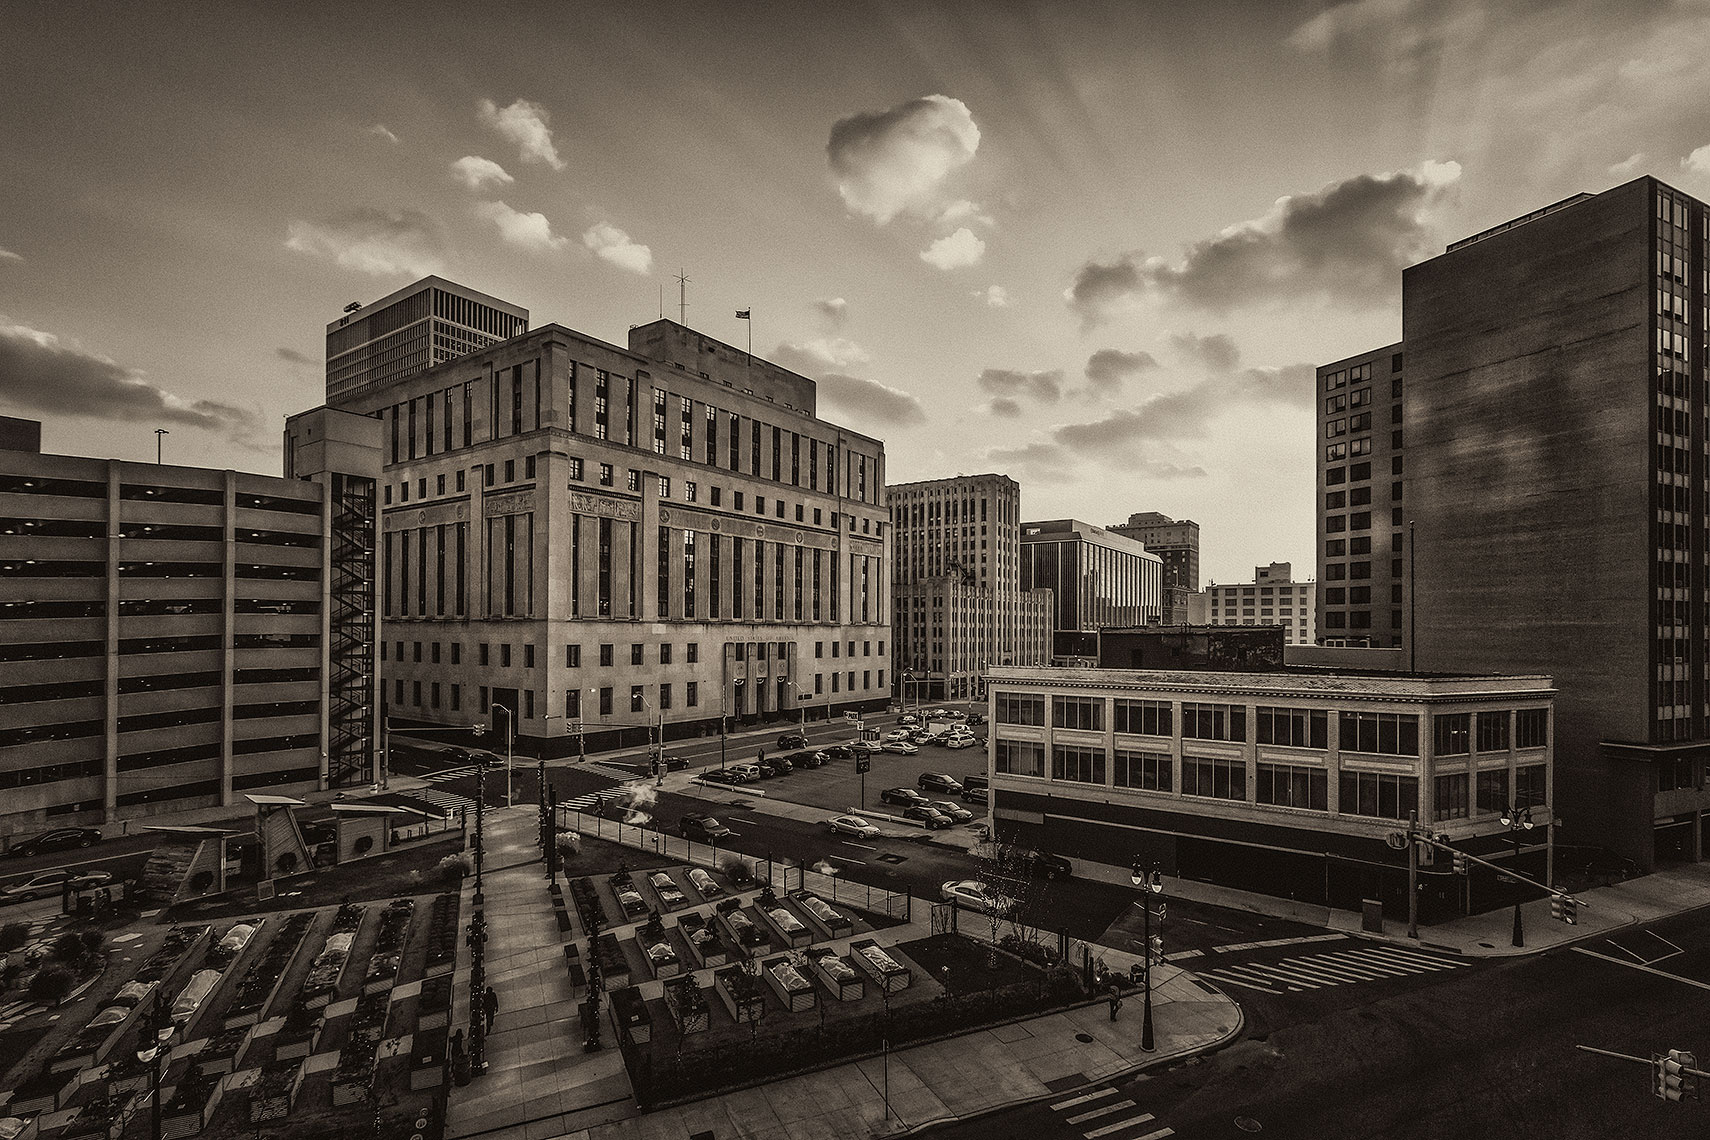 detroit_riverfront-9270-Edit-Edit.jpg